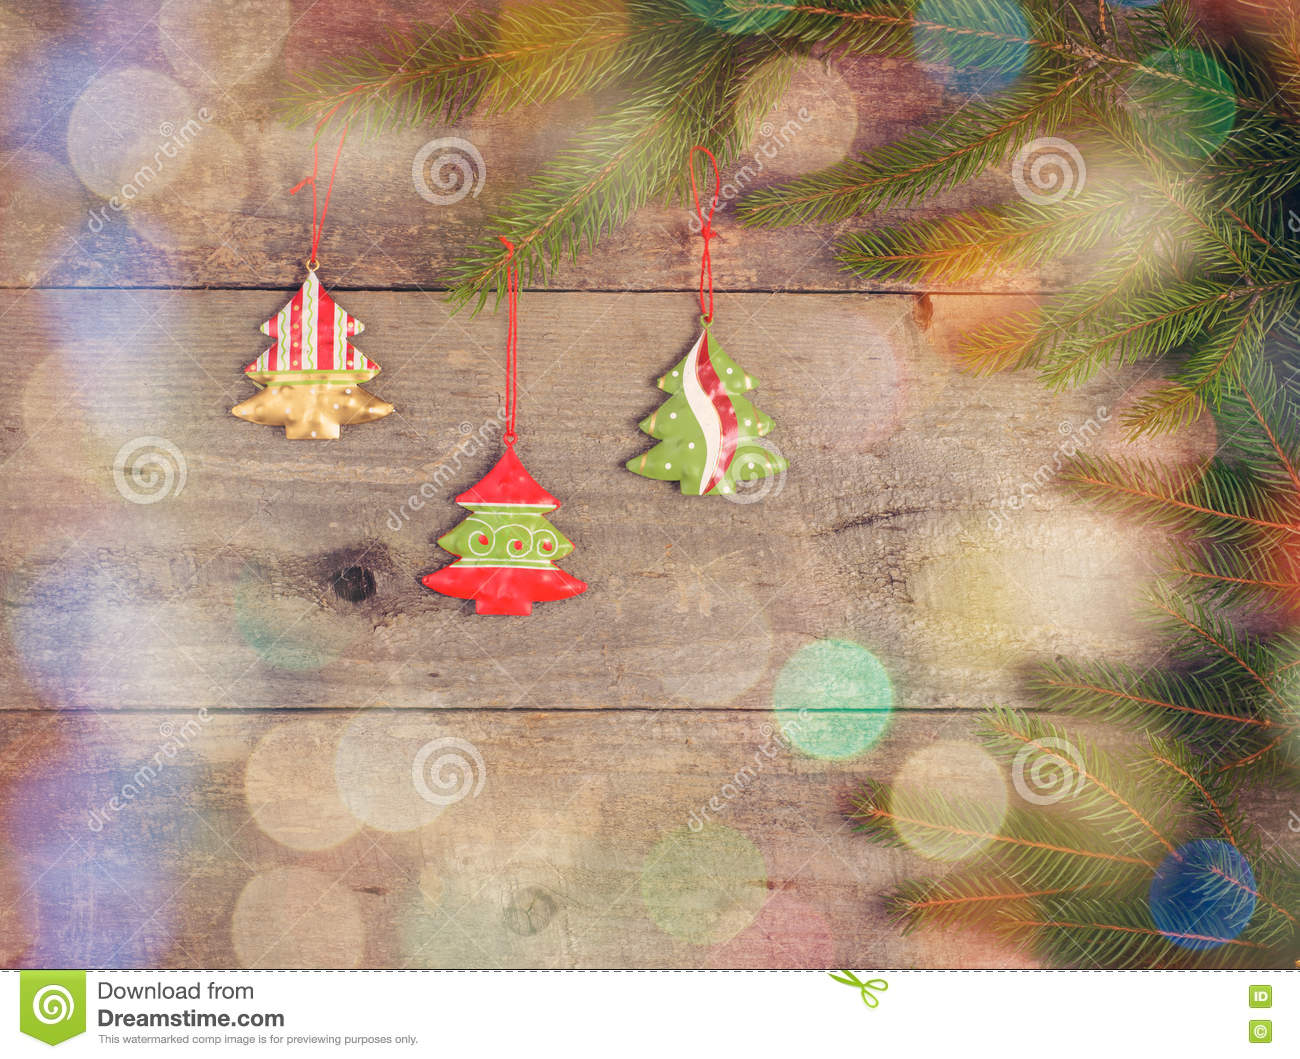 Little Christmas Tree Toys On Pine Branch On Wood Table